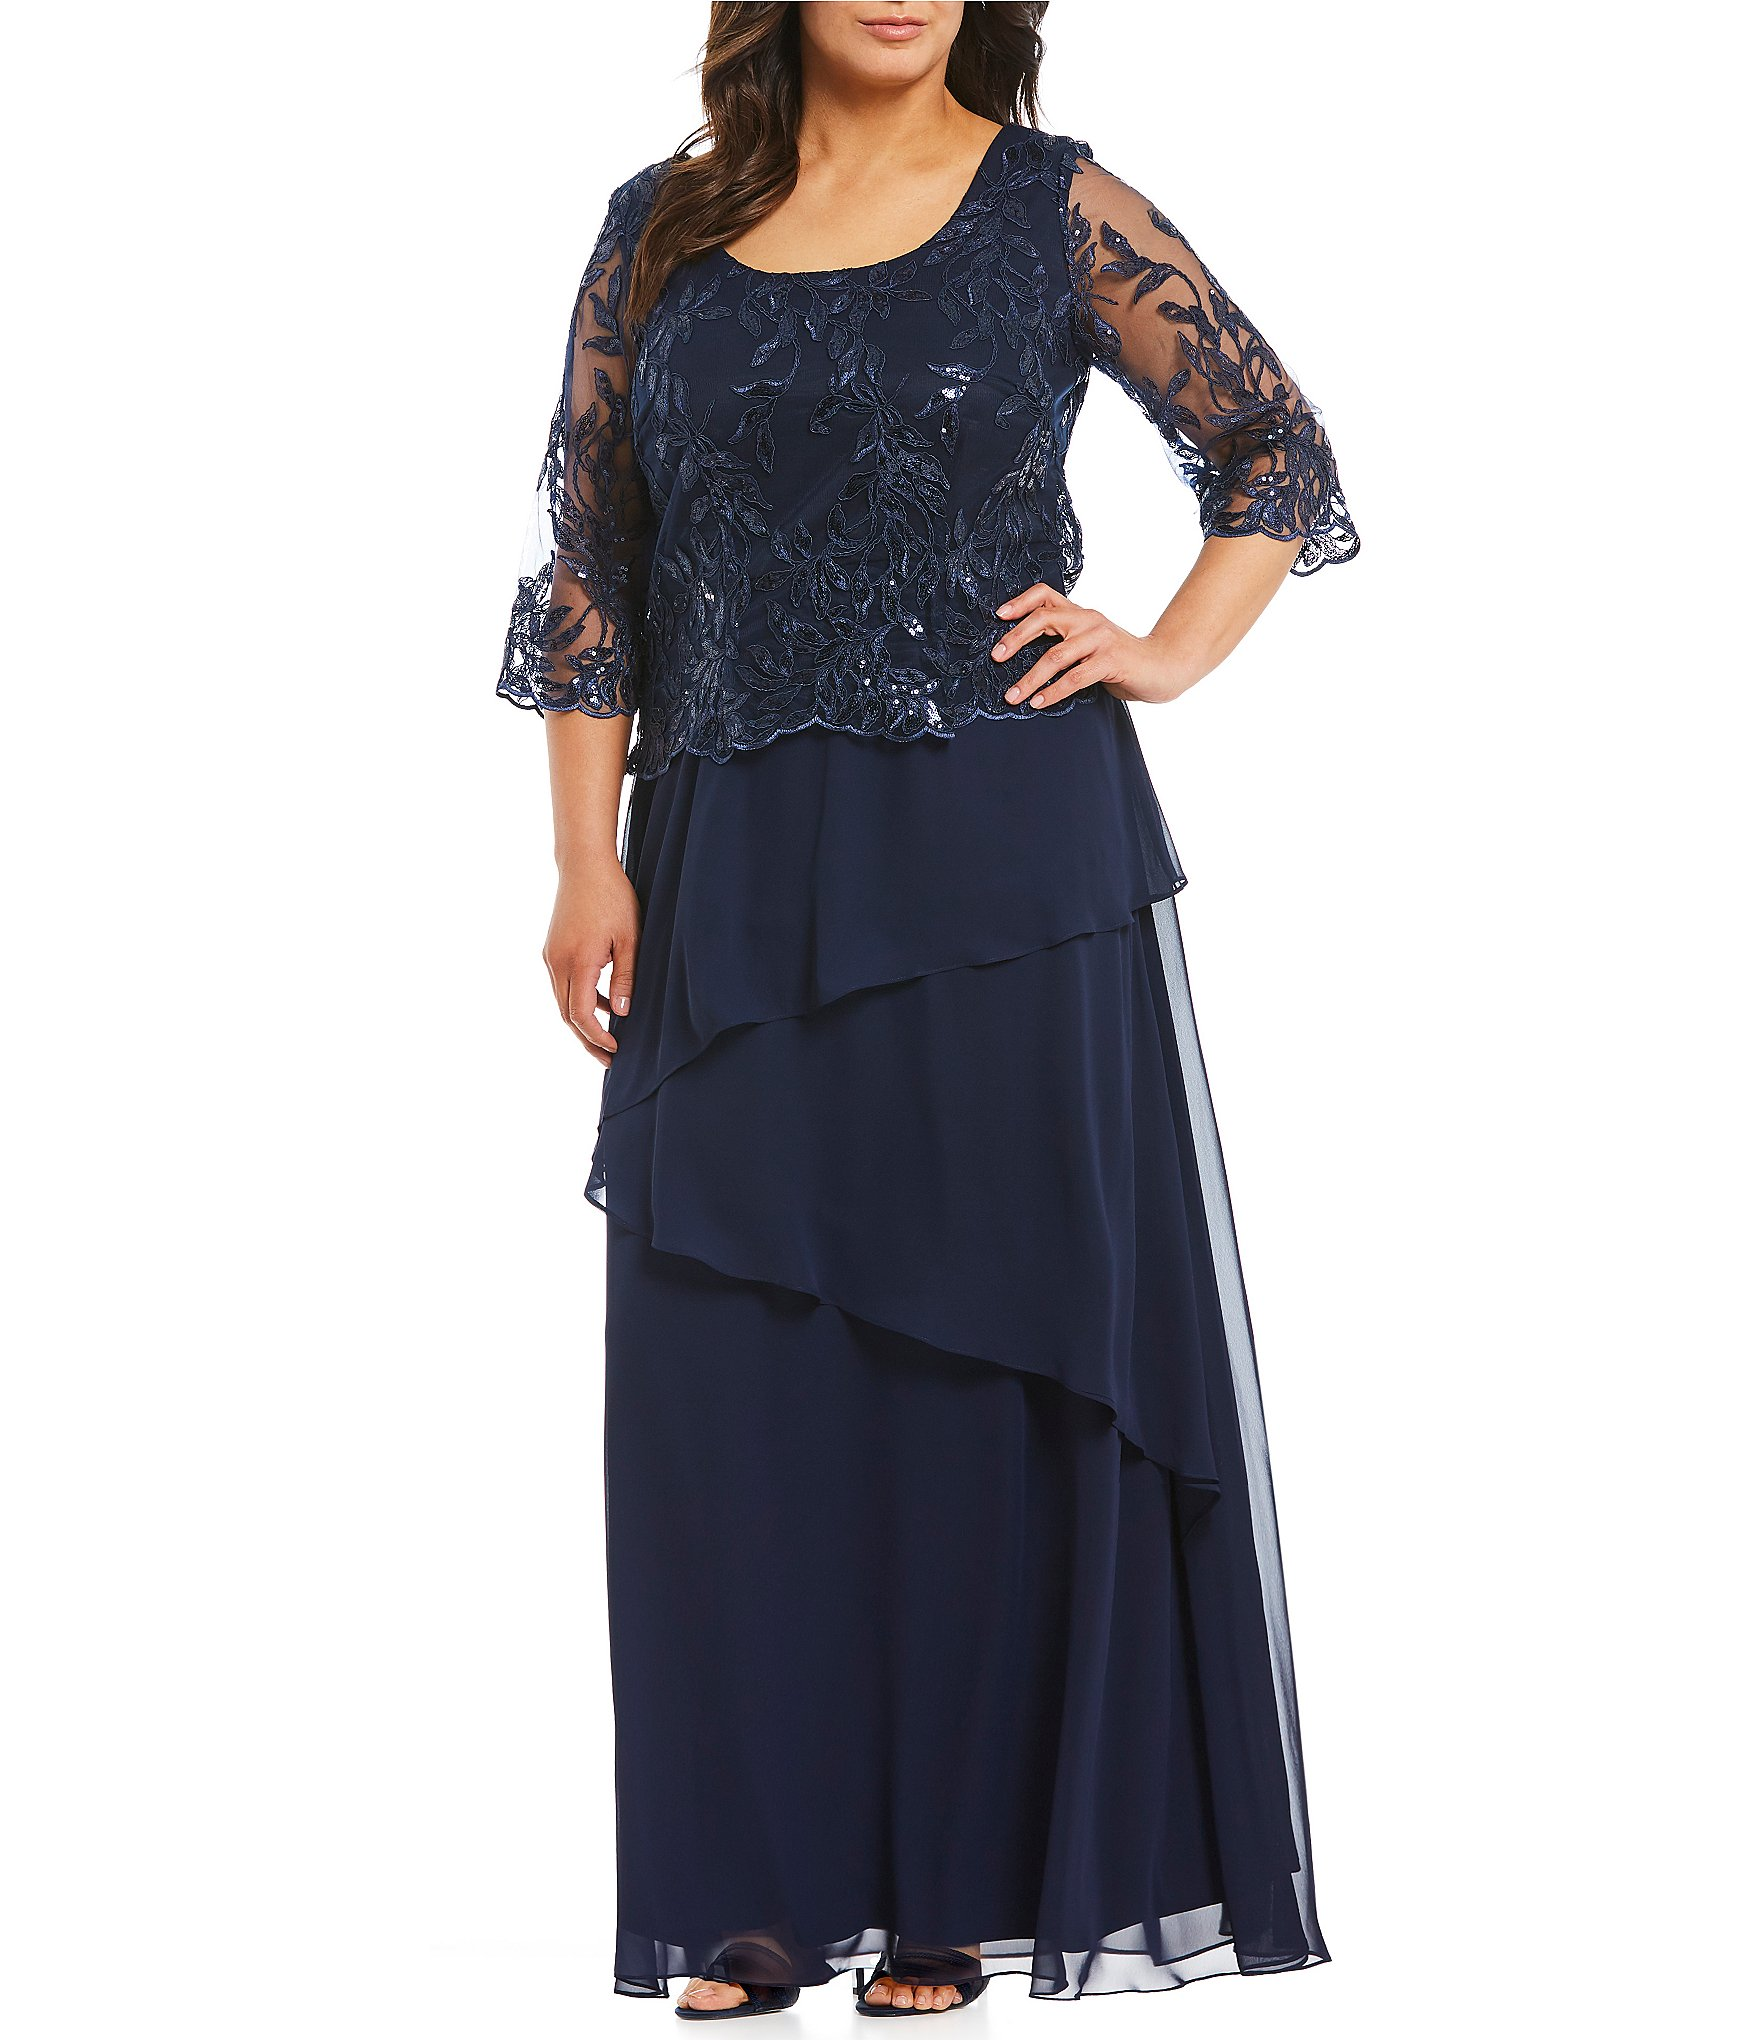 Plus Size Mother Bride Dresses: Le Bos Plus Embroidered Bodice Gown